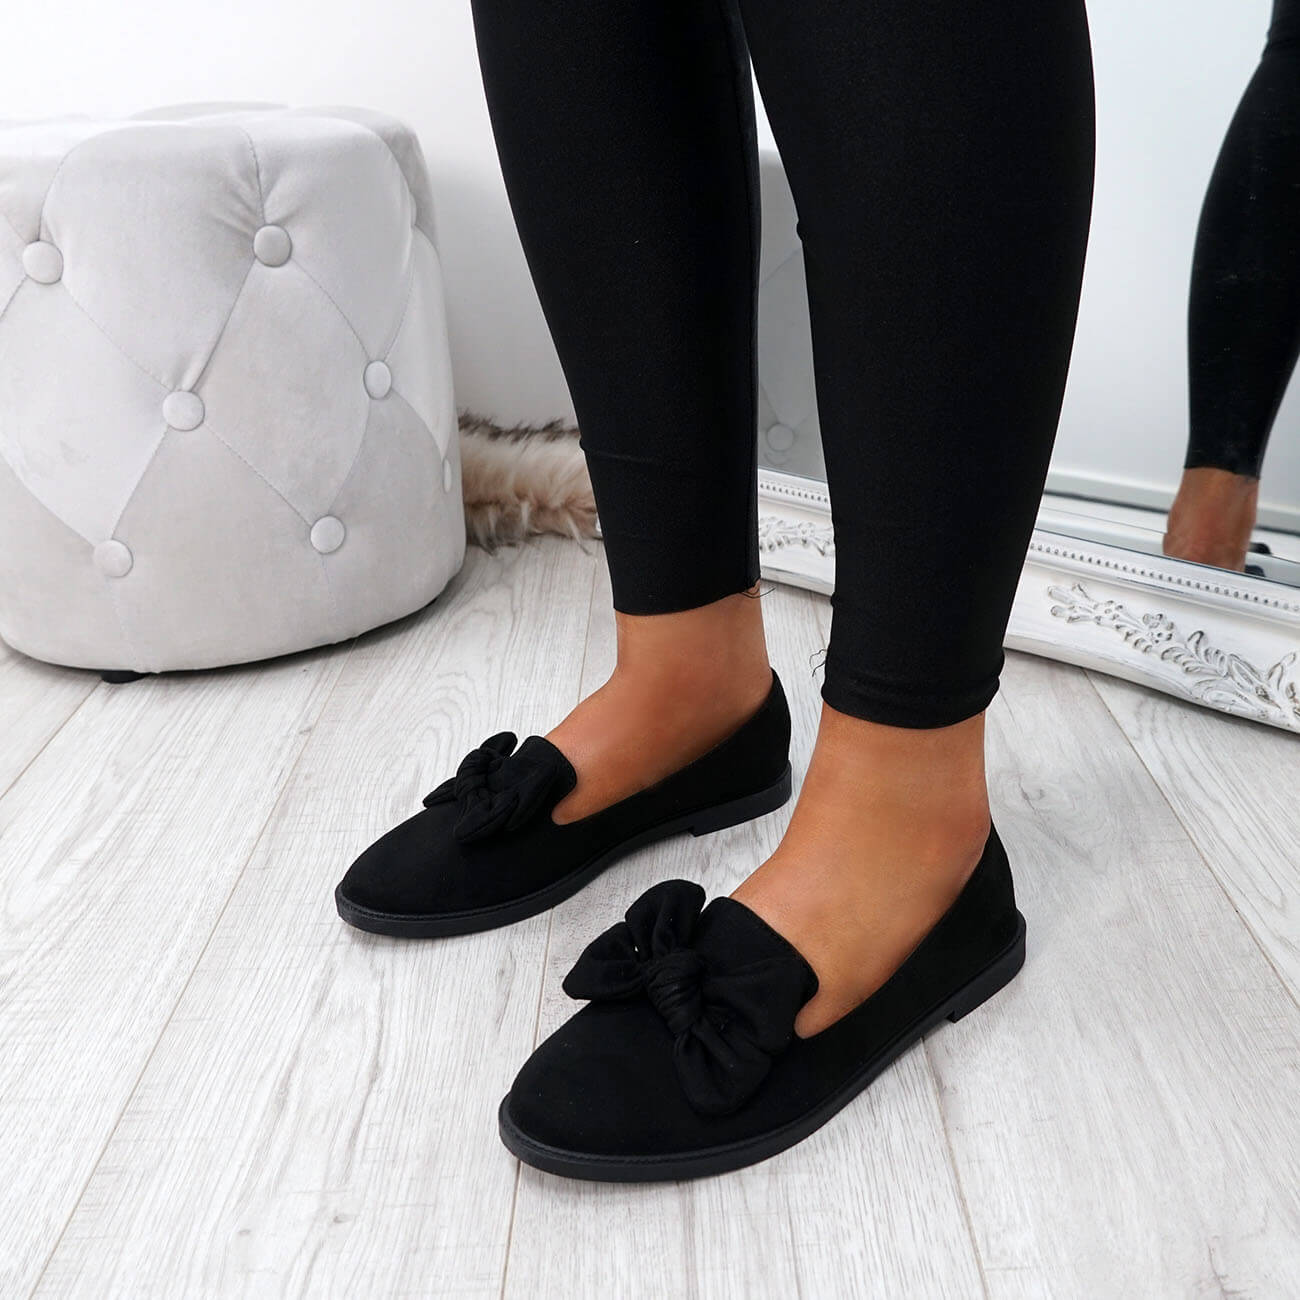 WOMENS-LADIES-BOW-BALLERINA-PUMPS-FLATS-SLIP-ON-BALLET-CASUAL-WORK-SHOES-SIZE thumbnail 14